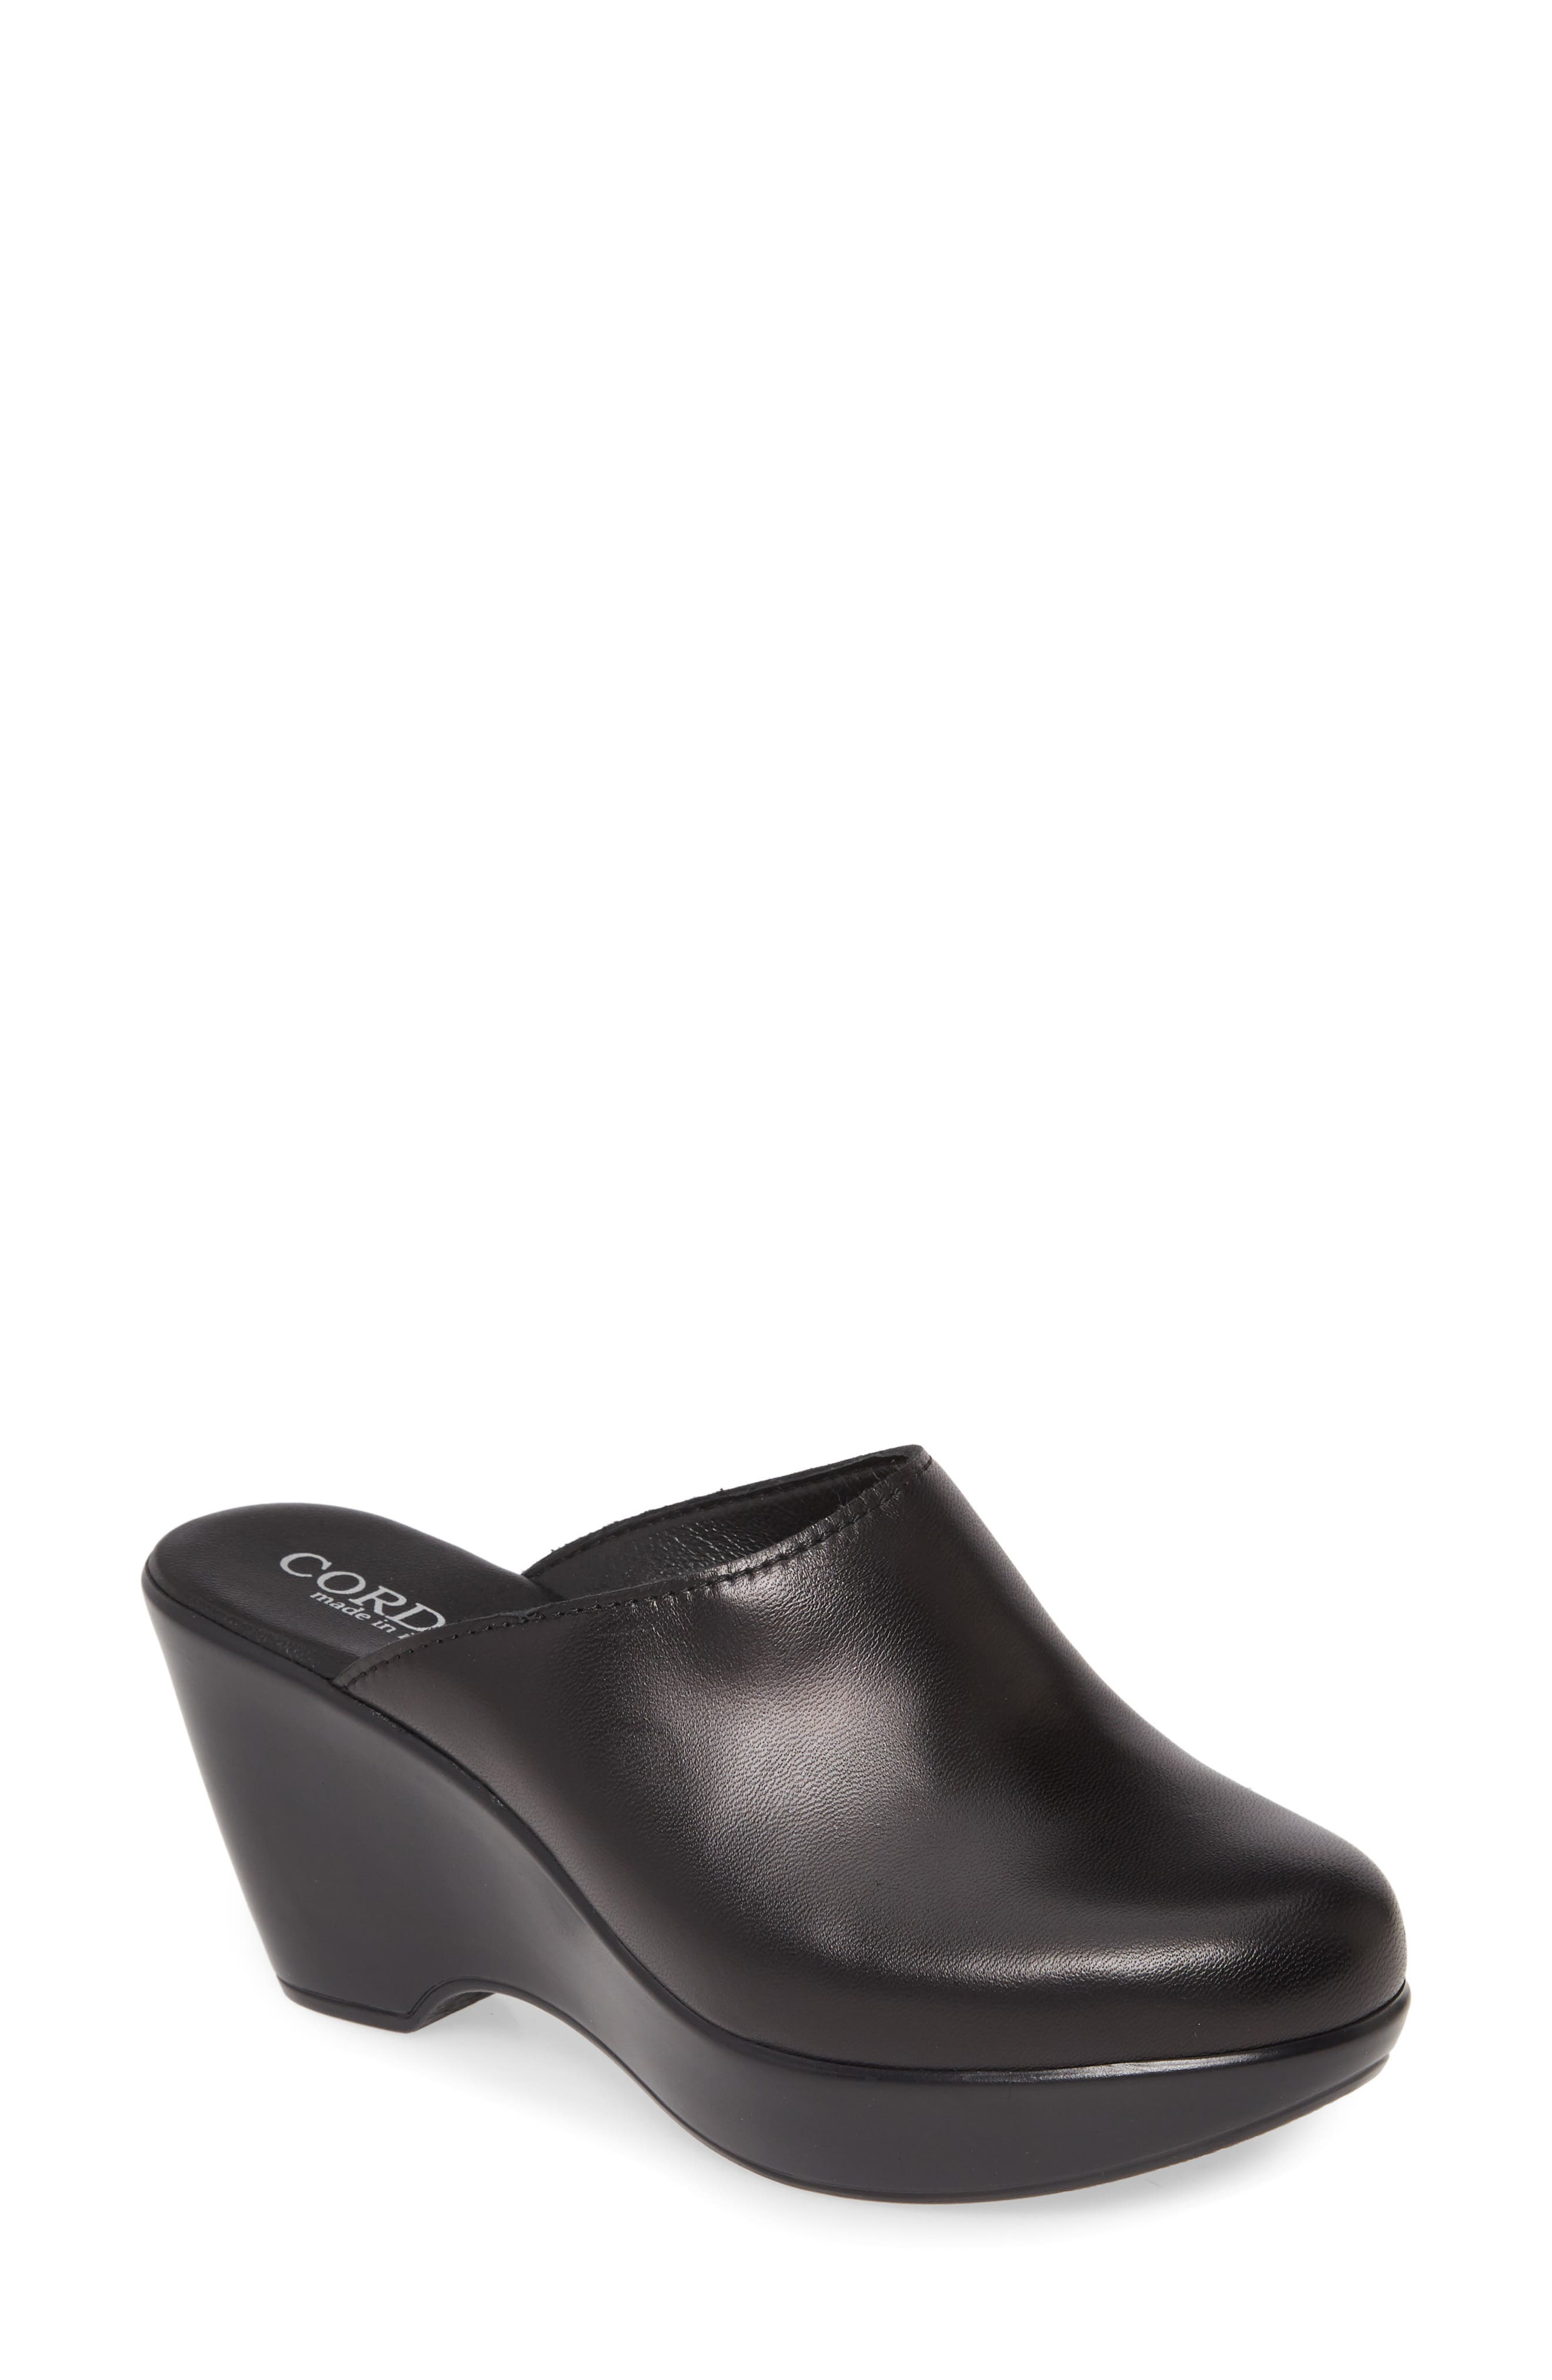 This Italian-crafted clog is set on a lightweight rocker platform that gently propels each step forward while providing all-day comfort. Style Name: Cordani Pierson Clog (Women). Style Number: 5971791. Available in stores.